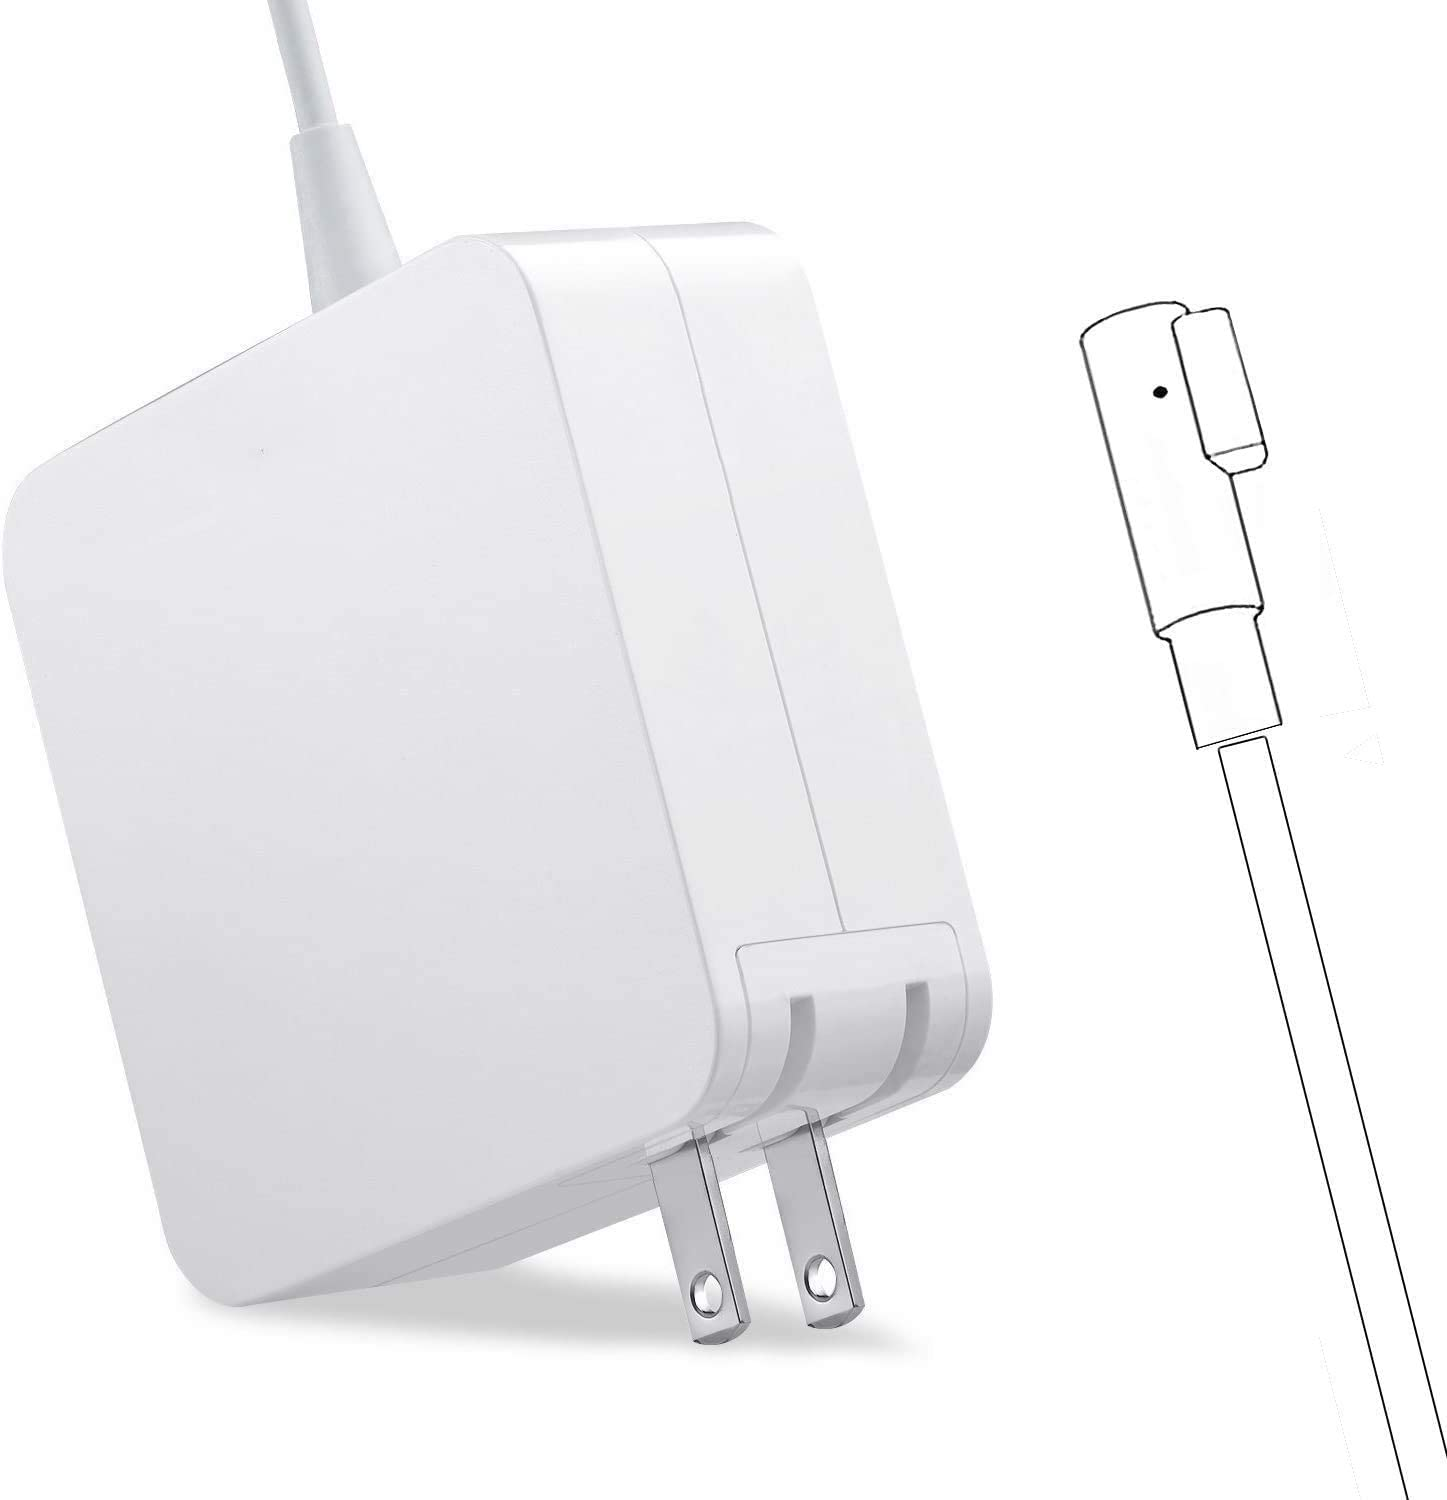 Charger for Mac Book Pro, AC 60W Power Adapter Magnetic Connector Charger for Mac Book Pro 13-inch(Before Mid 2012 Models) White